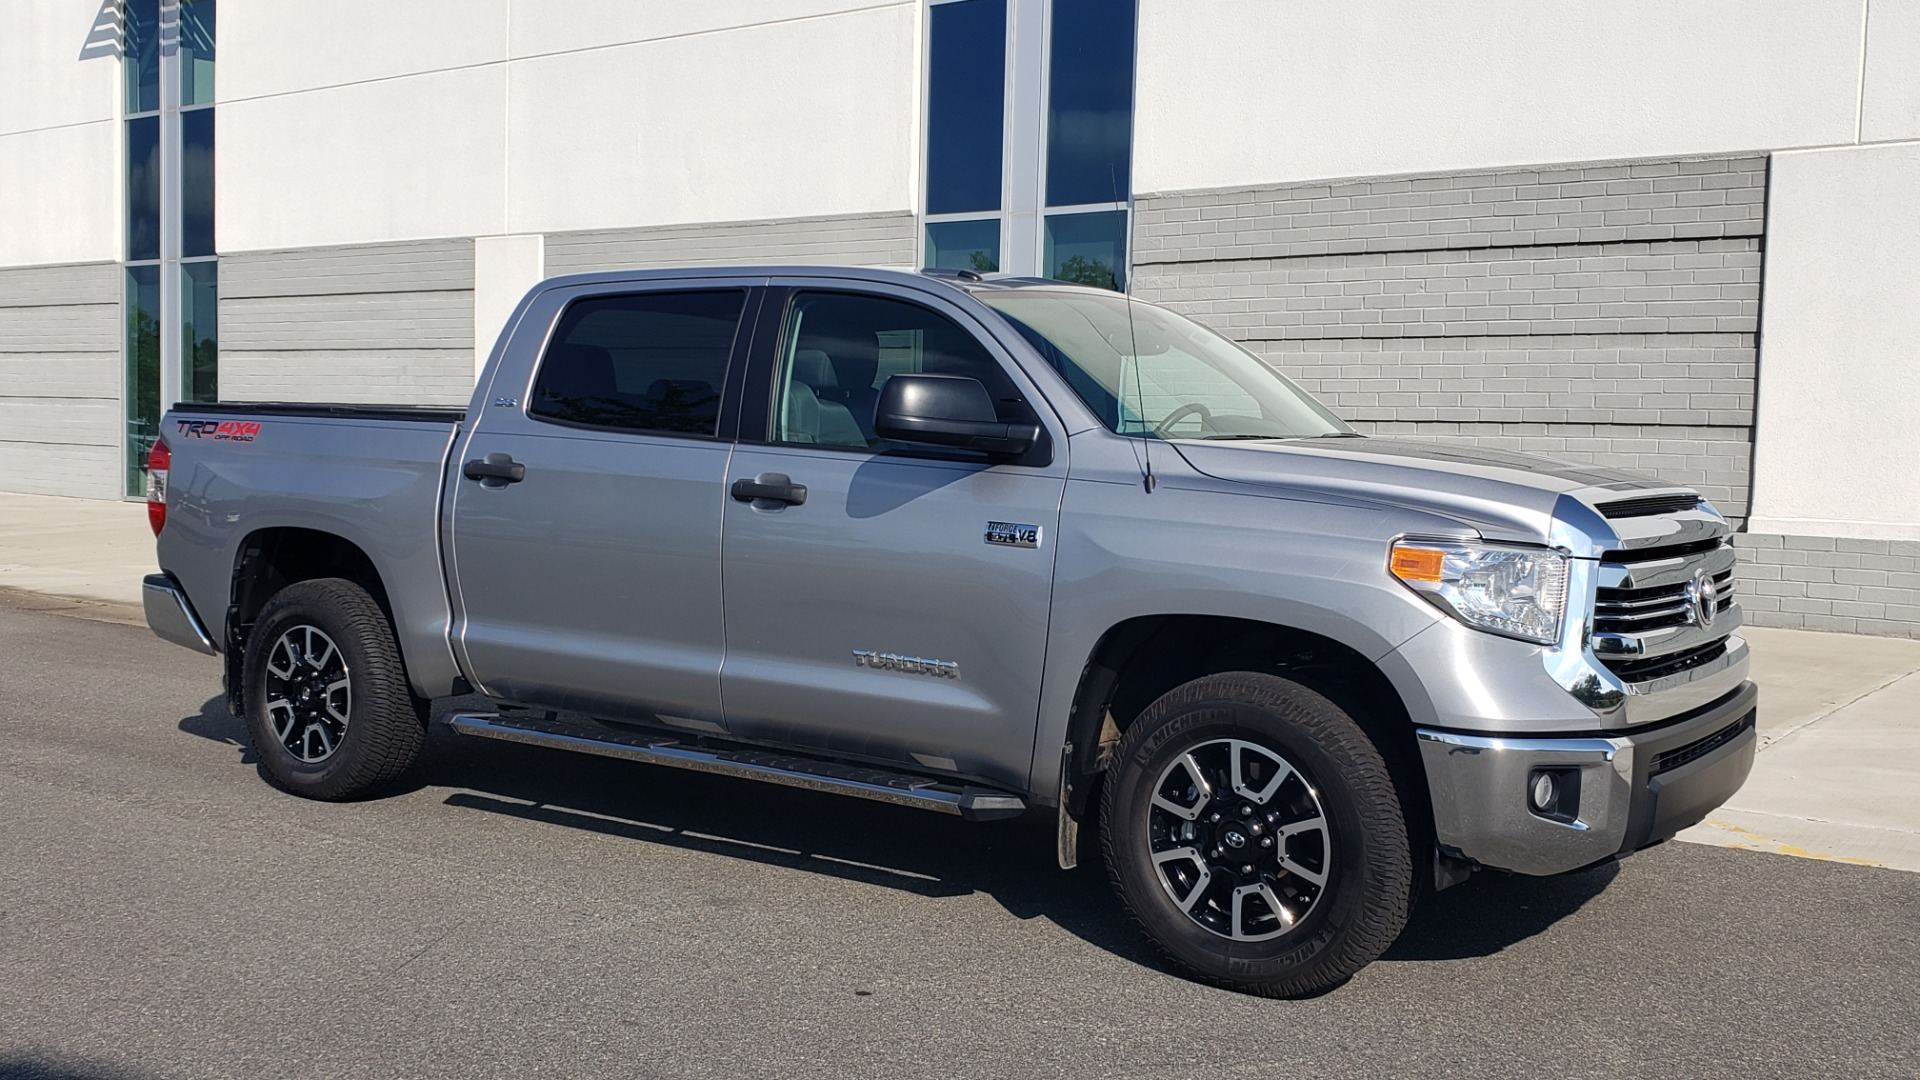 Used 2017 Toyota TUNDRA 4WD SR5 CREWMAX / 5.7L V8 / 6-SPD AUTO / NAV / REARVIEW for sale $44,395 at Formula Imports in Charlotte NC 28227 7